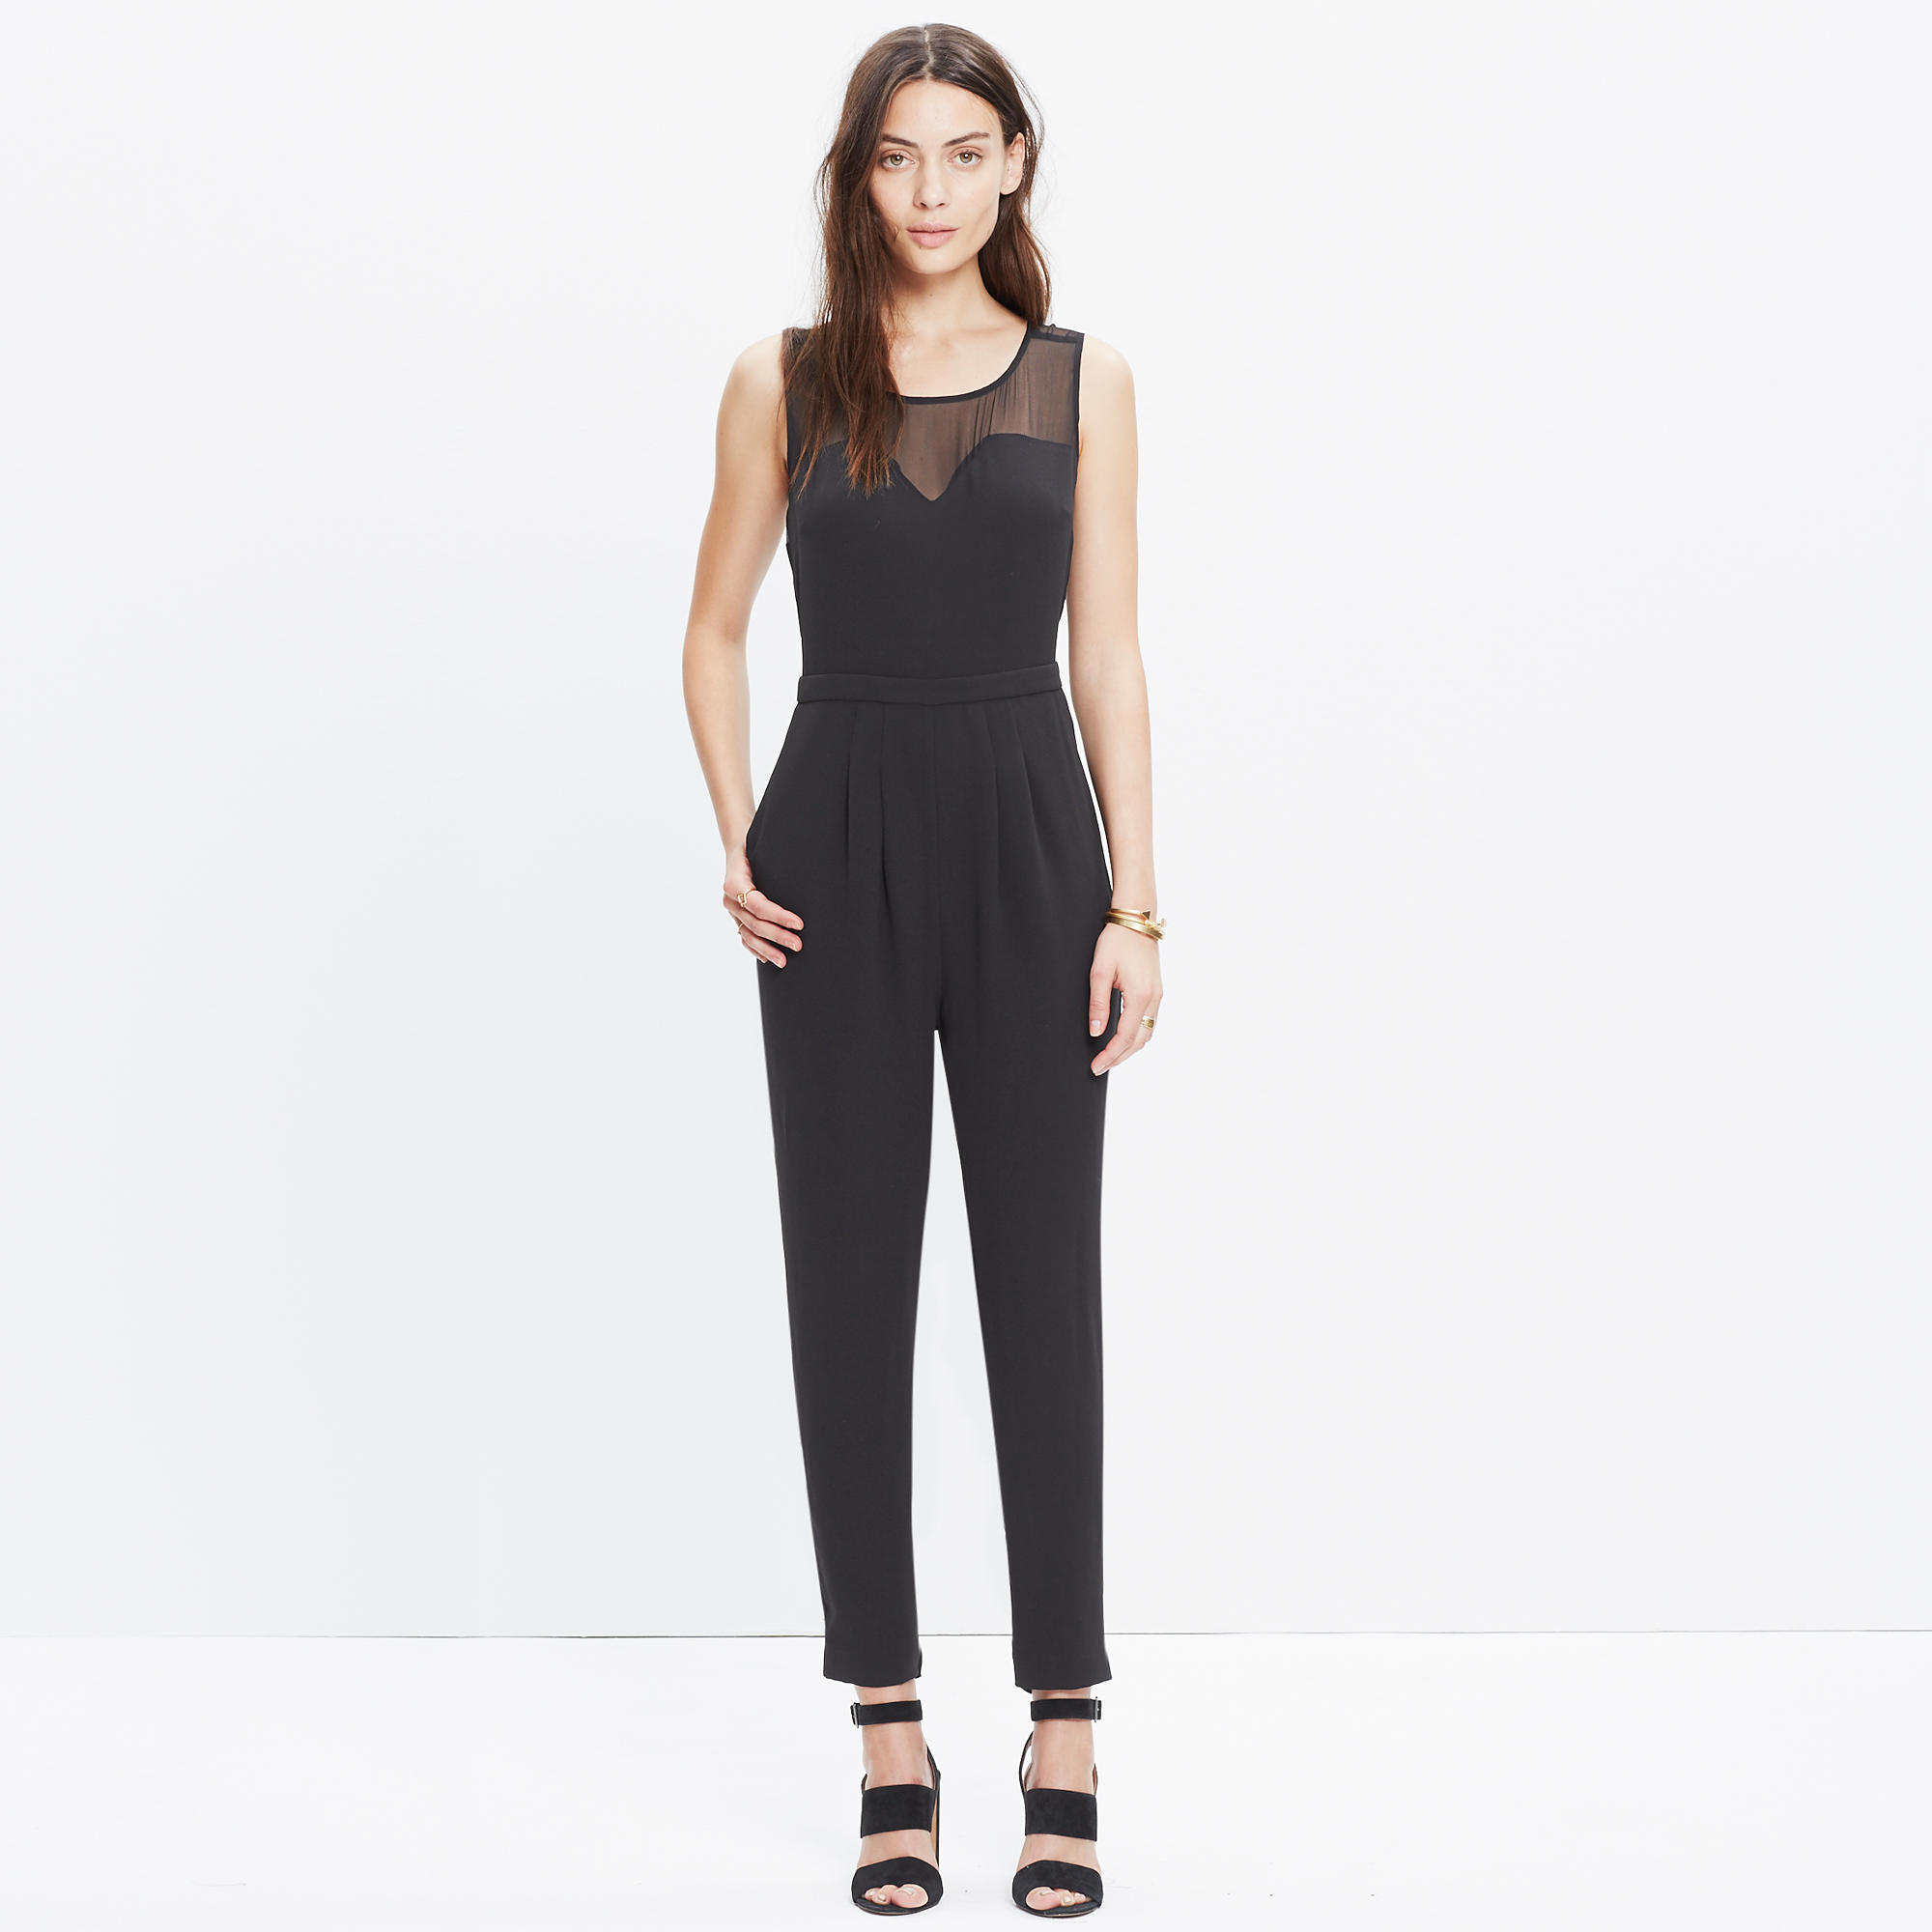 Sexy Jumpsuits and Rompers For Club, Evening Cocktail Party.